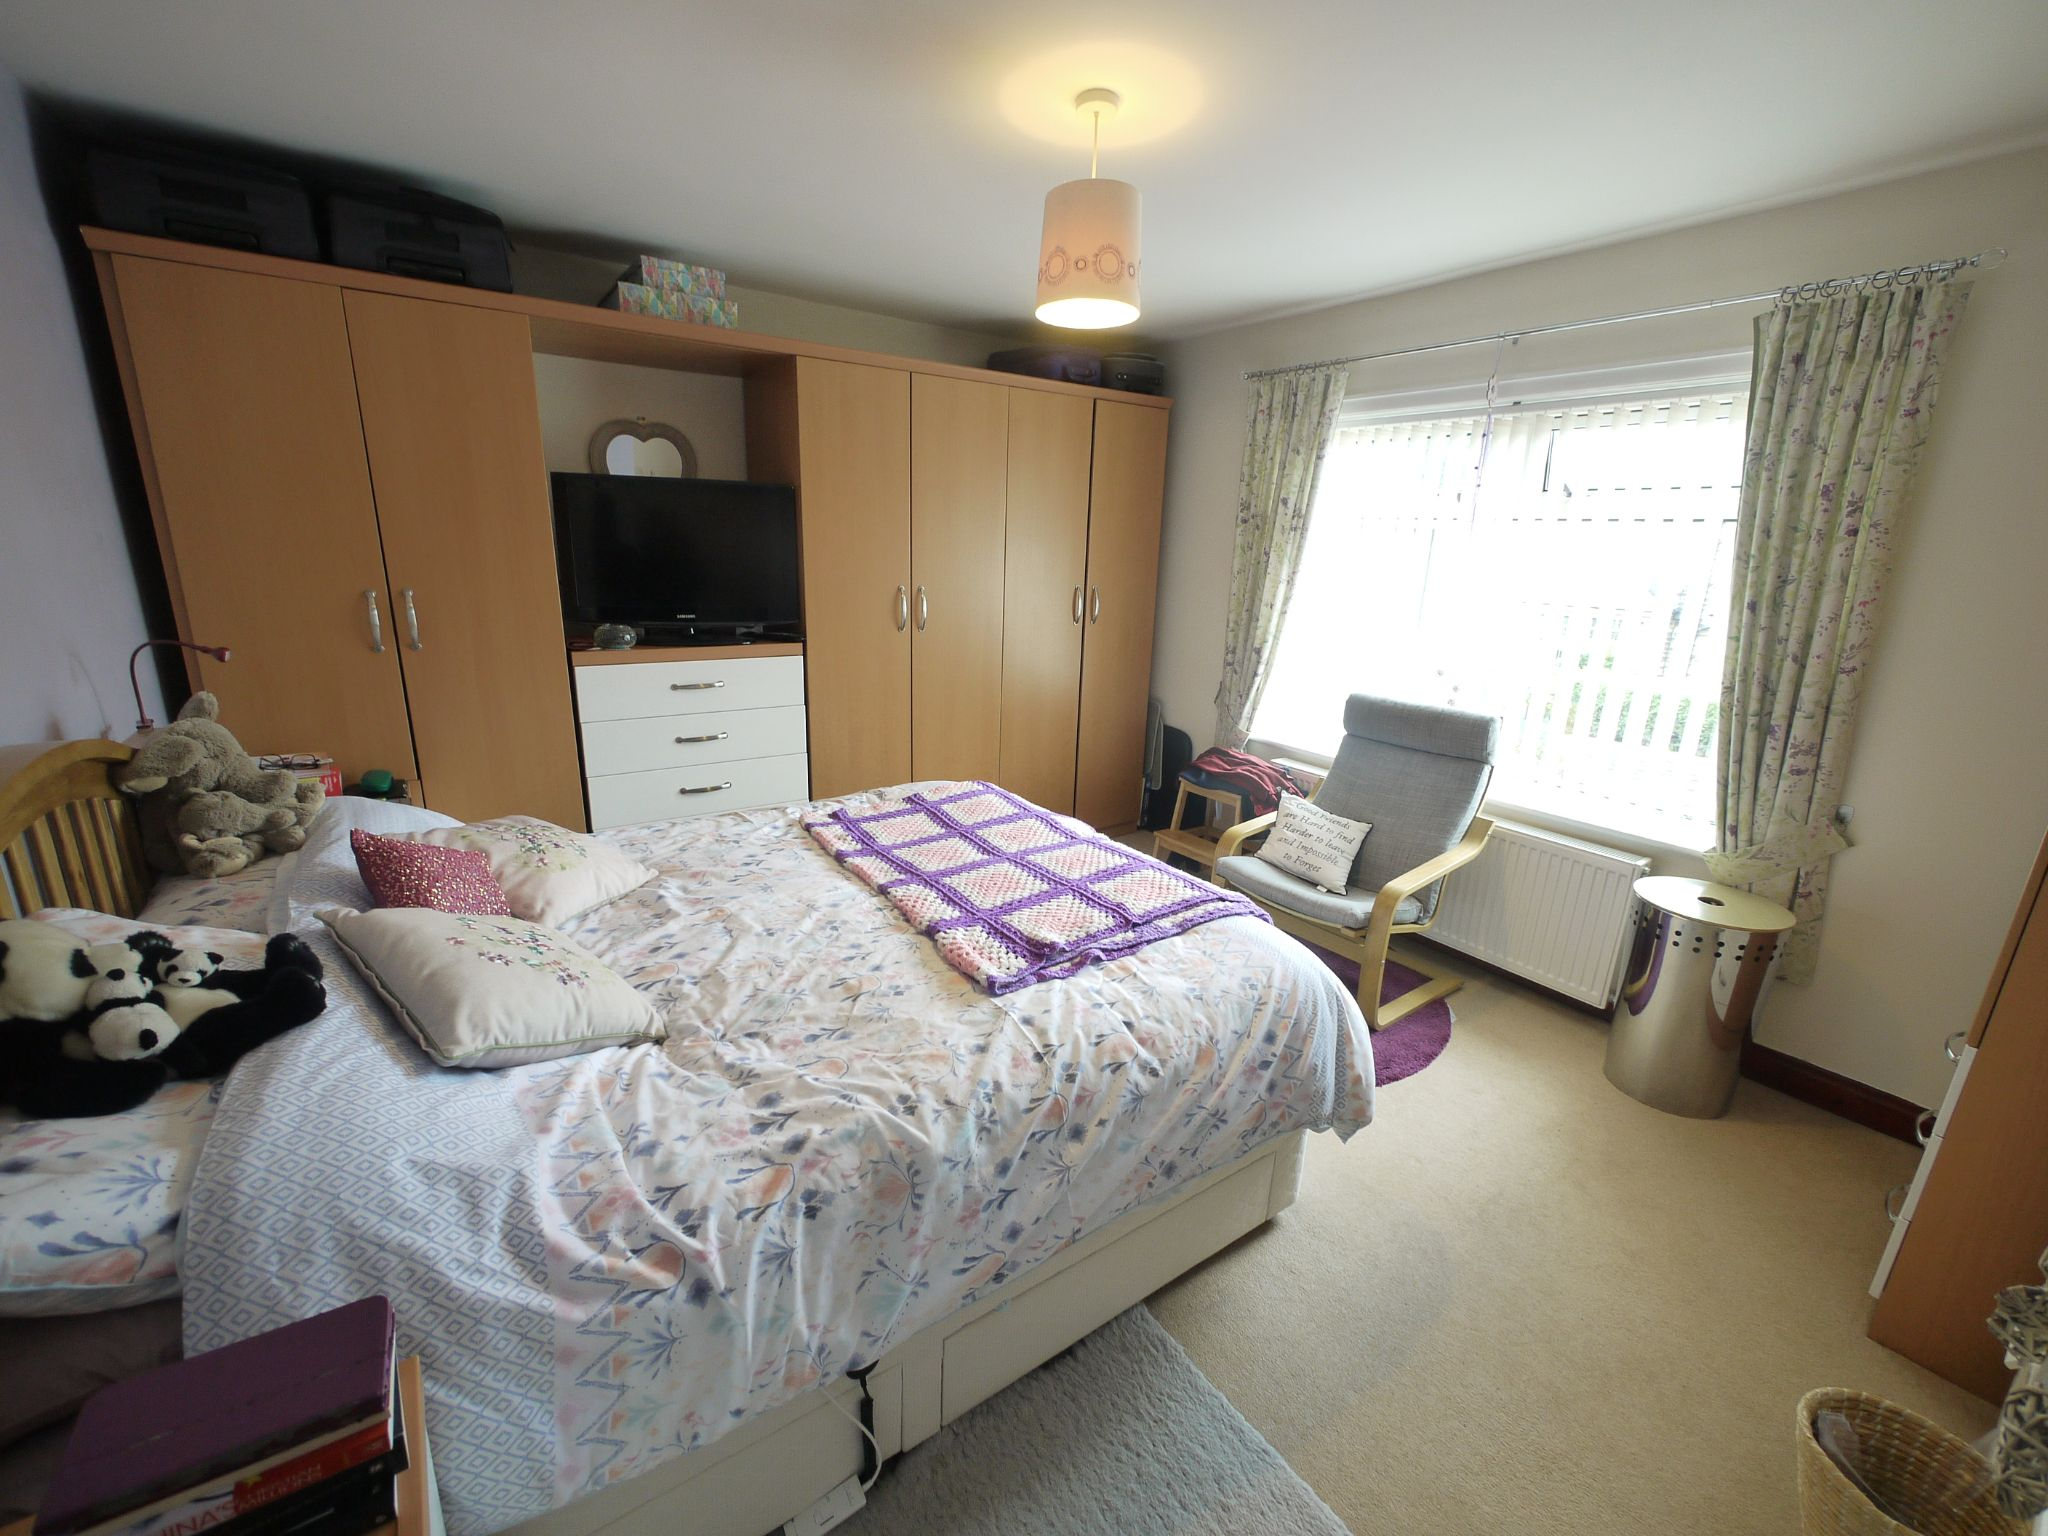 3 bedroom semi-detached house SSTC in Calderdale - Photograph 16.